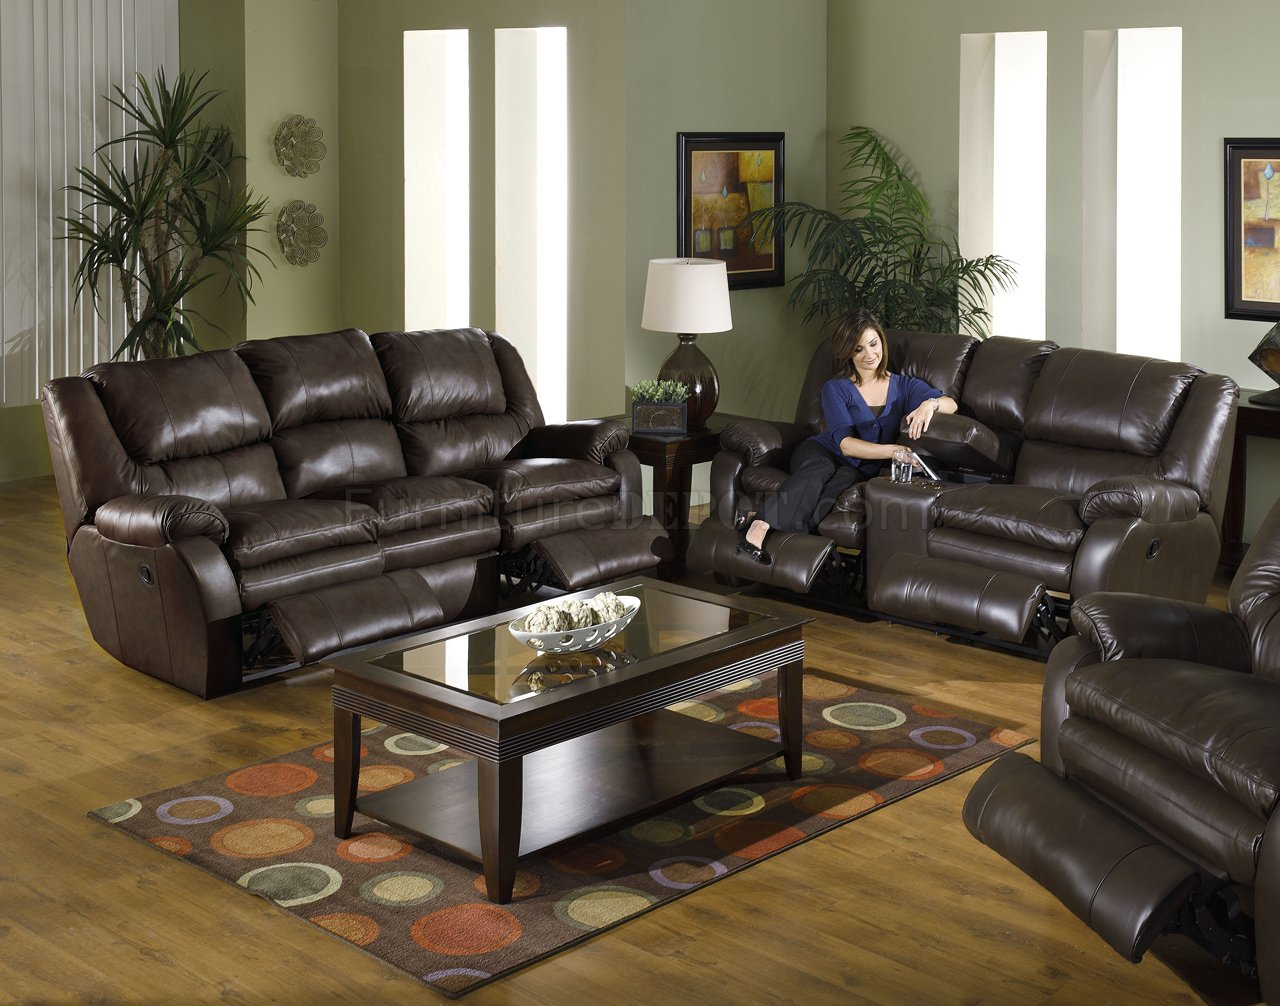 Luxury Top Grain Leather Reclining Sofa 15 Modern Sofa Inspiration with Top Grain Leather Reclining Sofa